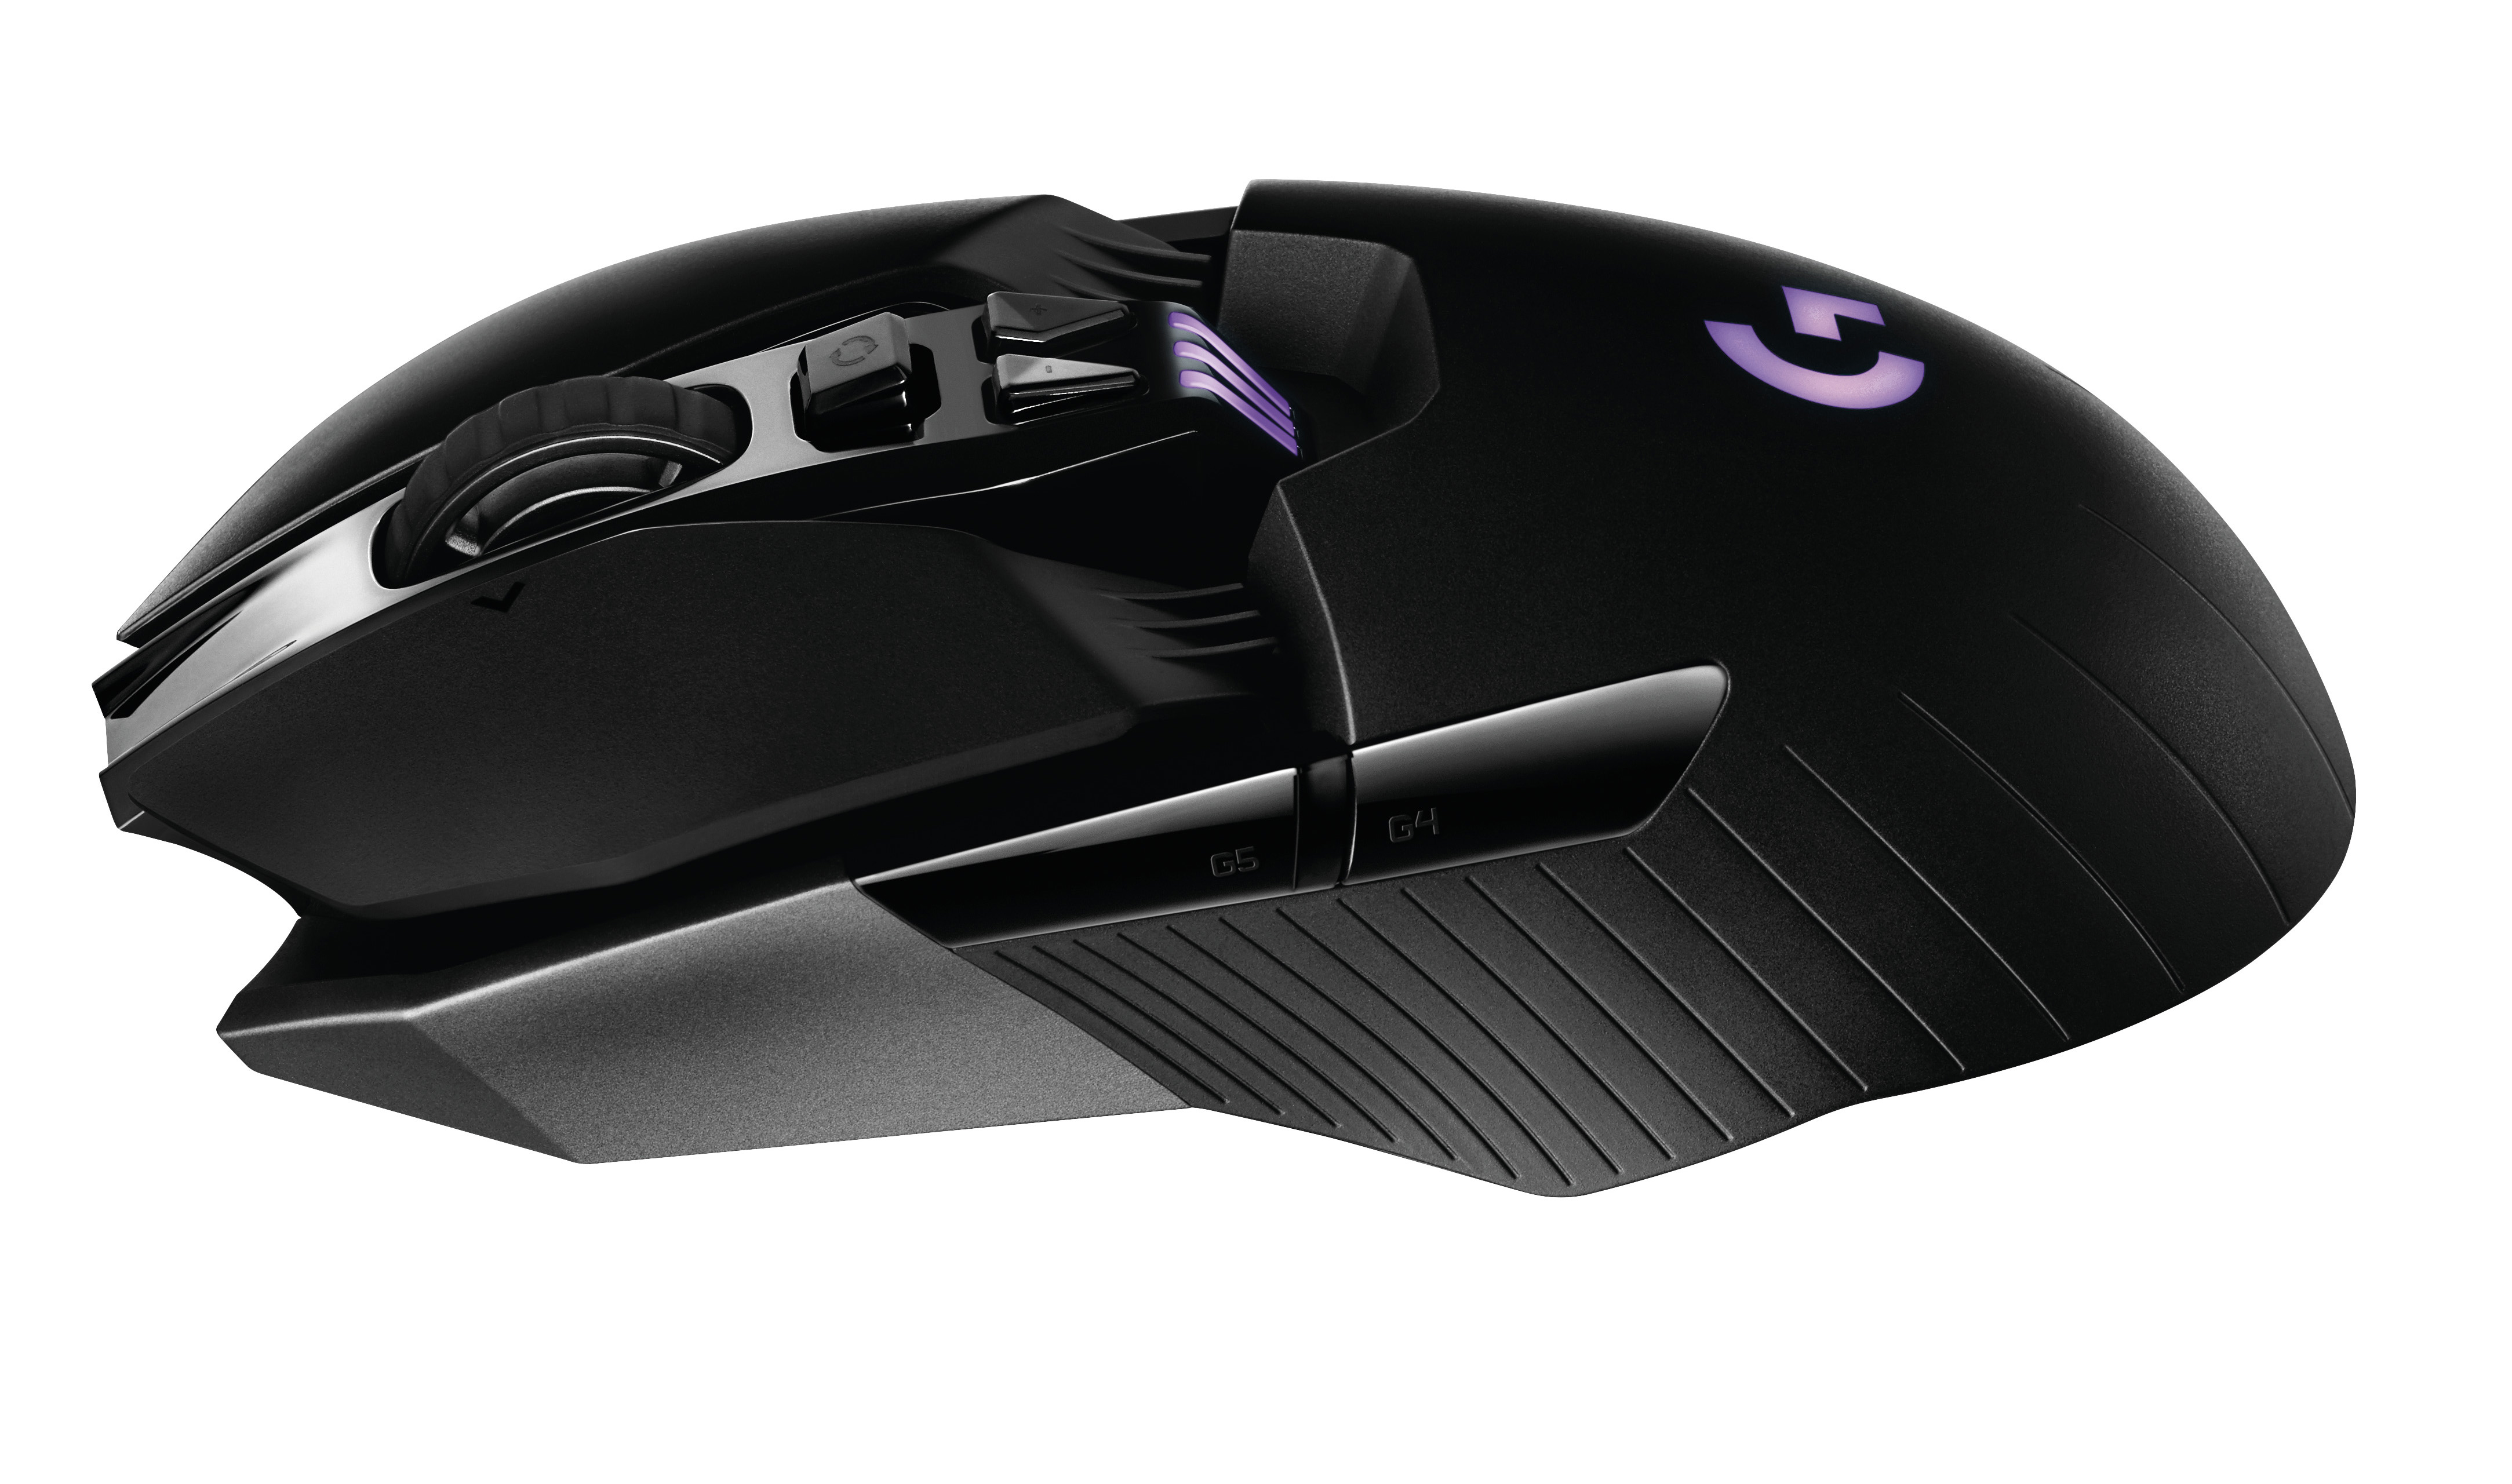 Logitech's wireless, ambidextrous G900 Chaos Spectrum is its new flagship gaming mouse